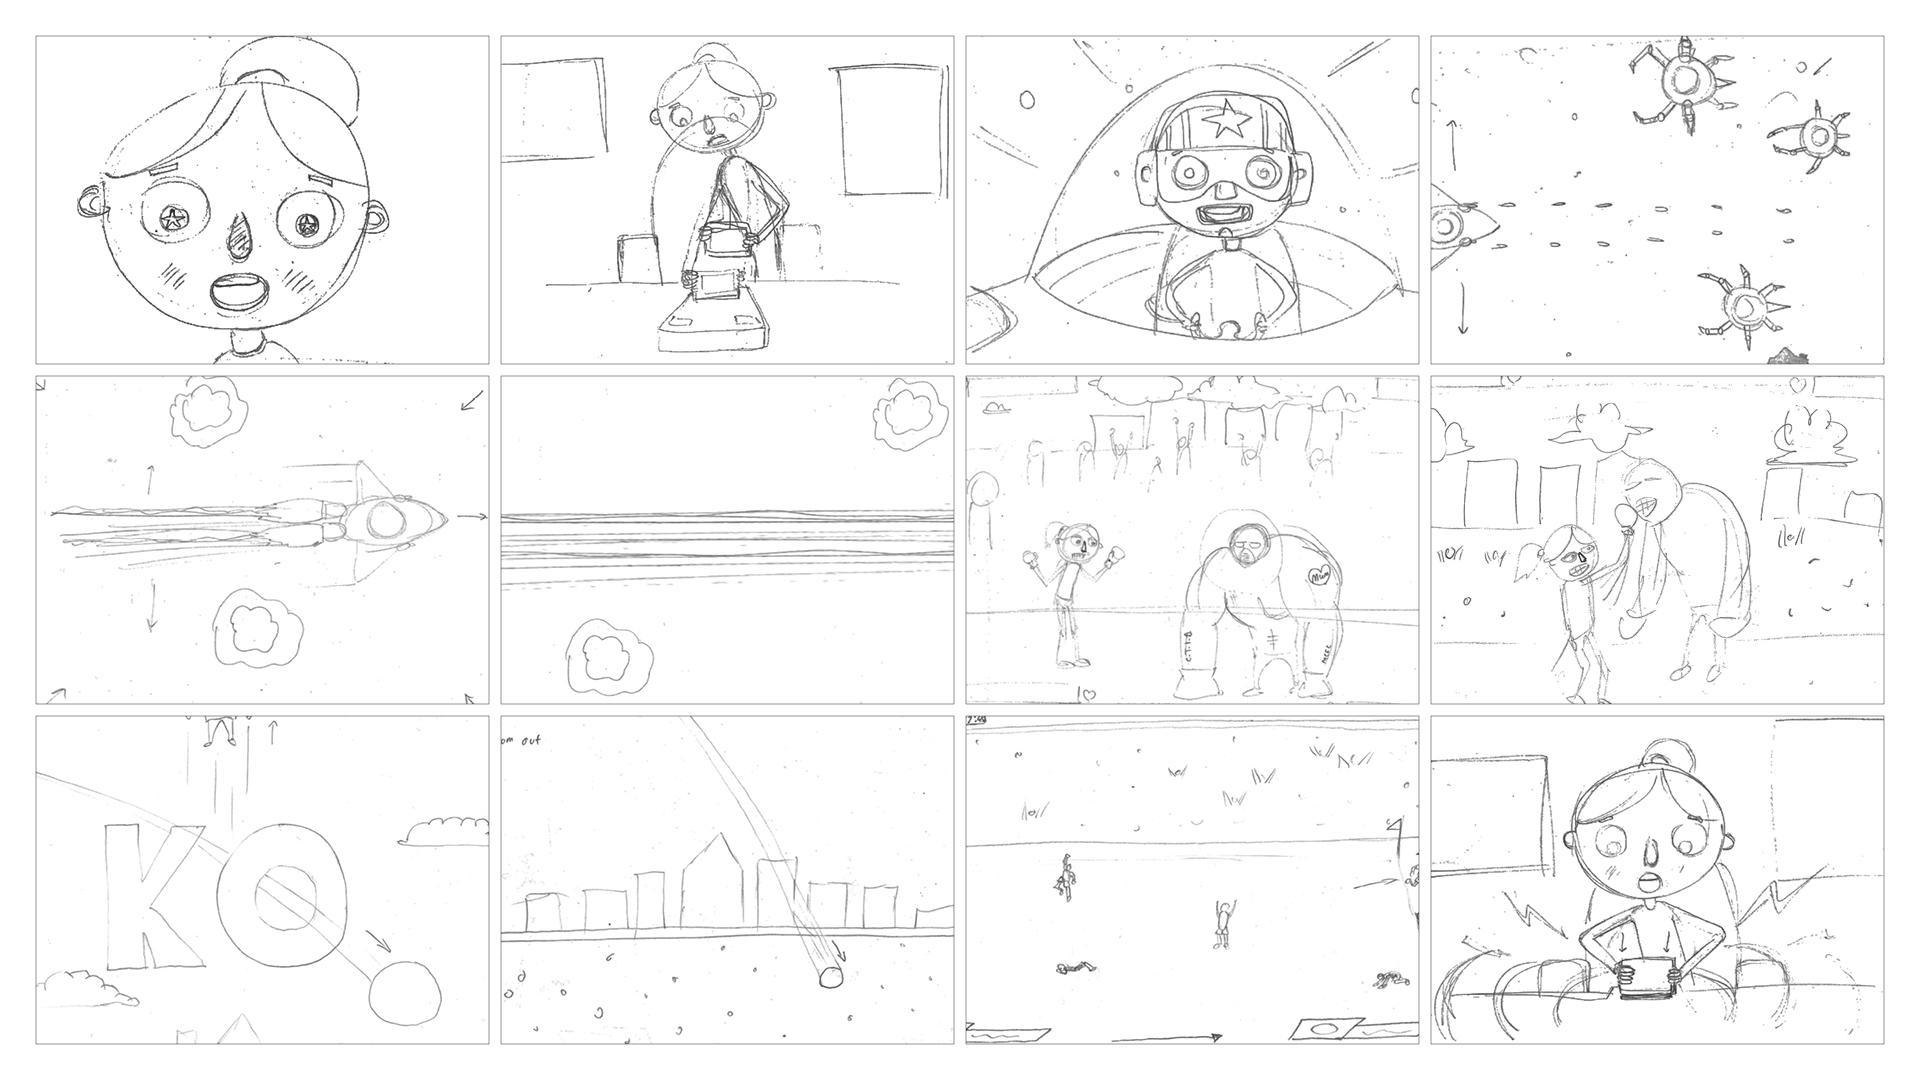 Big Chip Awards Storyboards for event animation